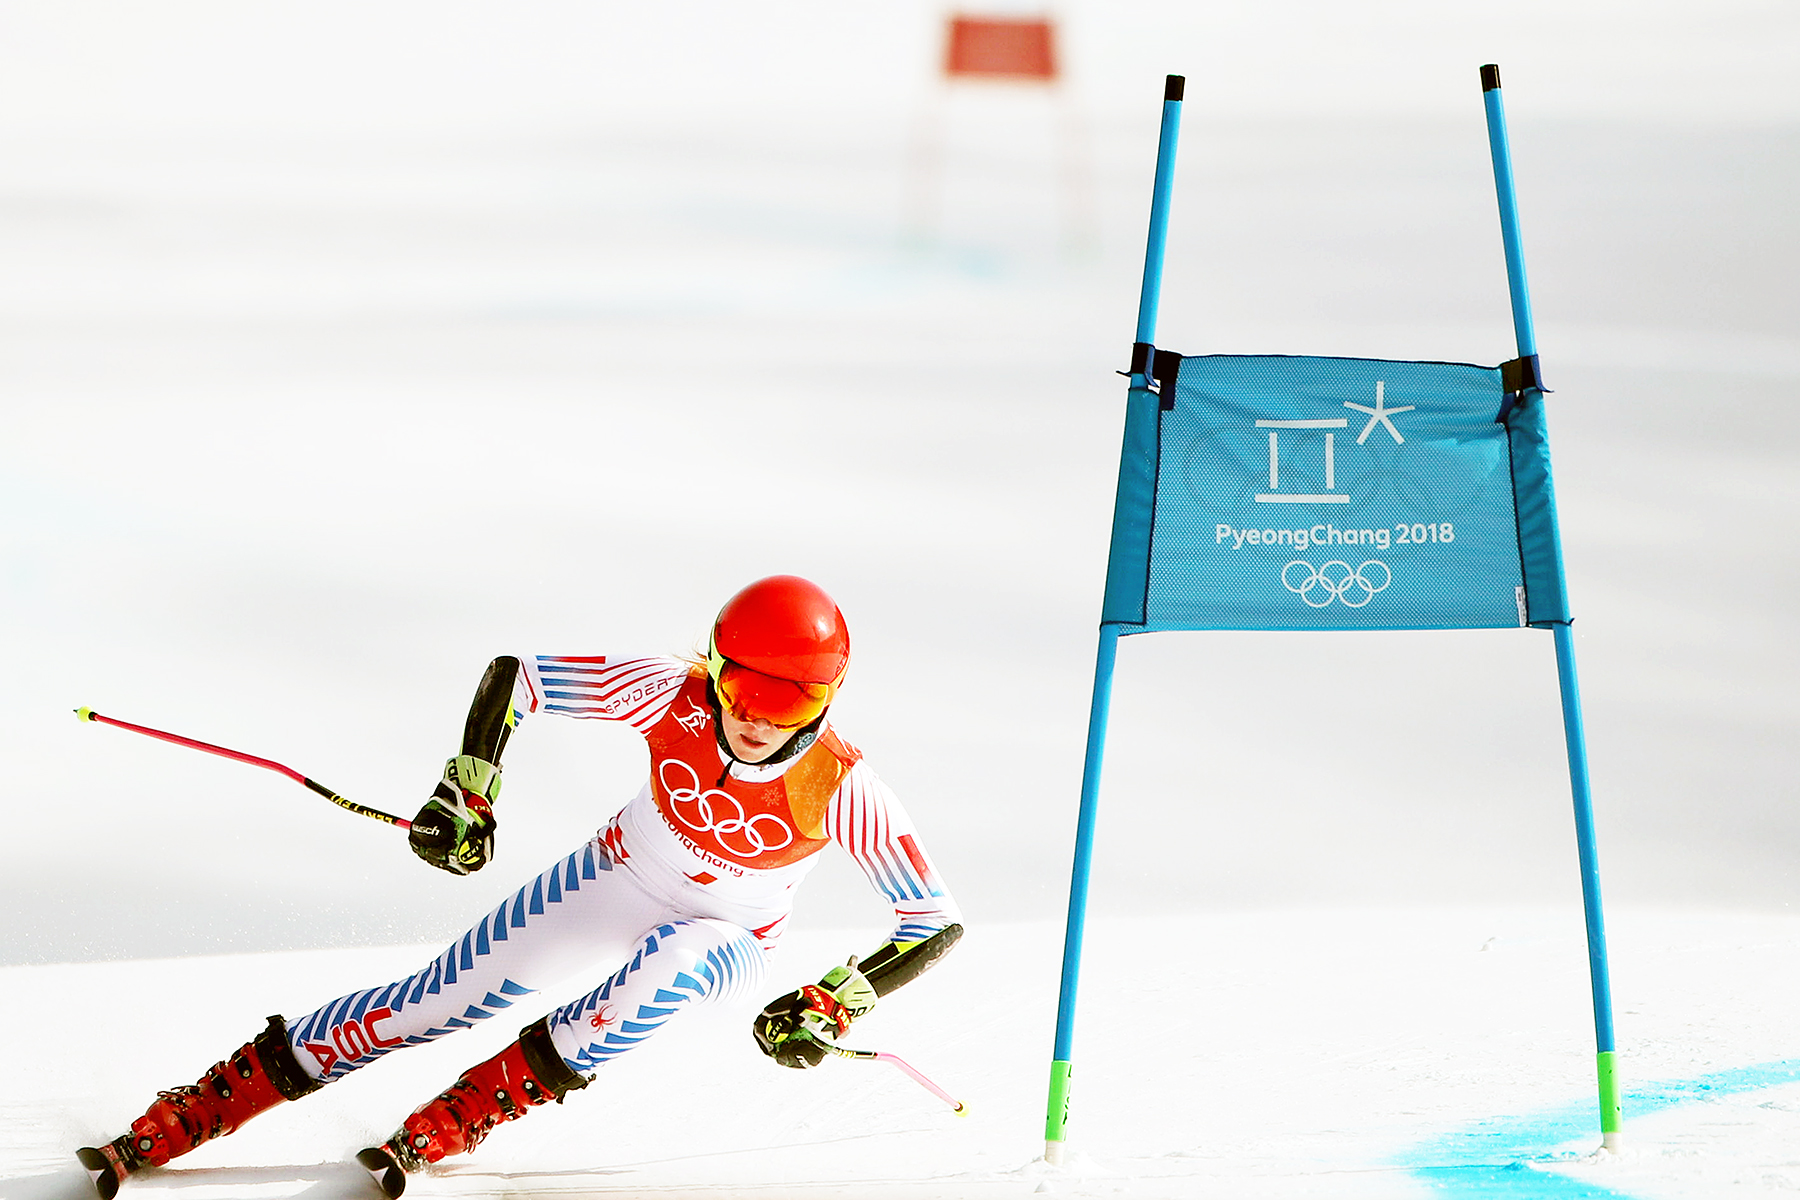 Shiffrin wins gold in slalom, with more in her sights